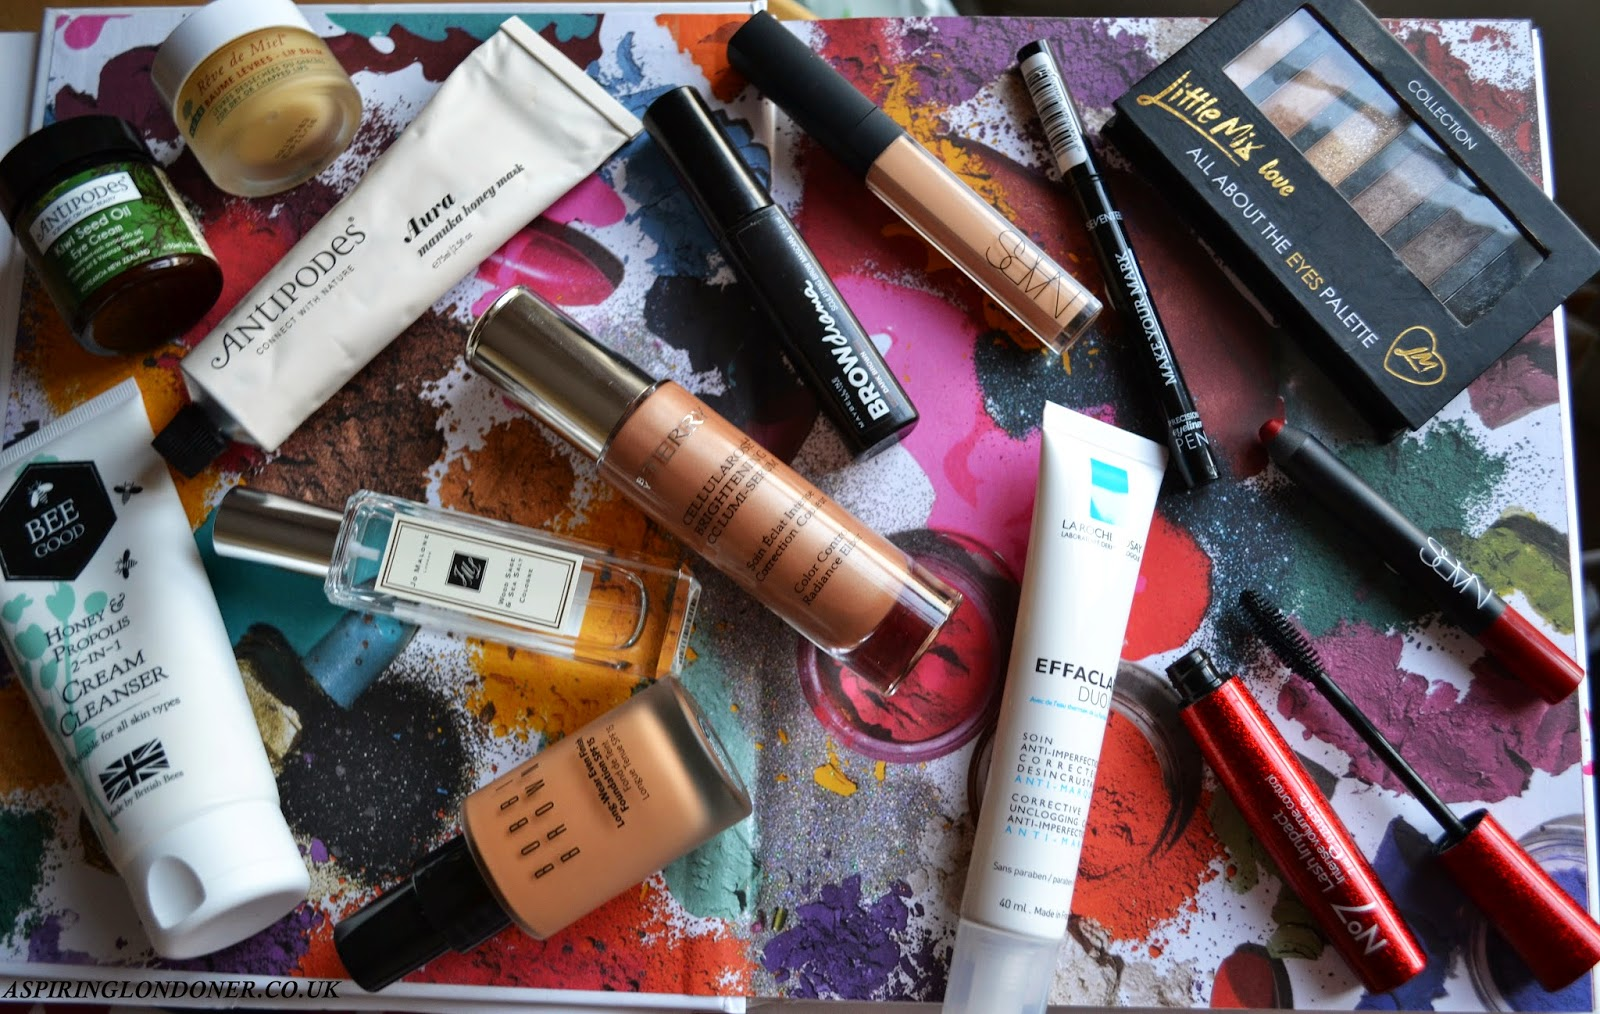 2014 Favourites ft Nars, Jo Malone, Bobbi Brown, By Terry - Aspiring Londoner